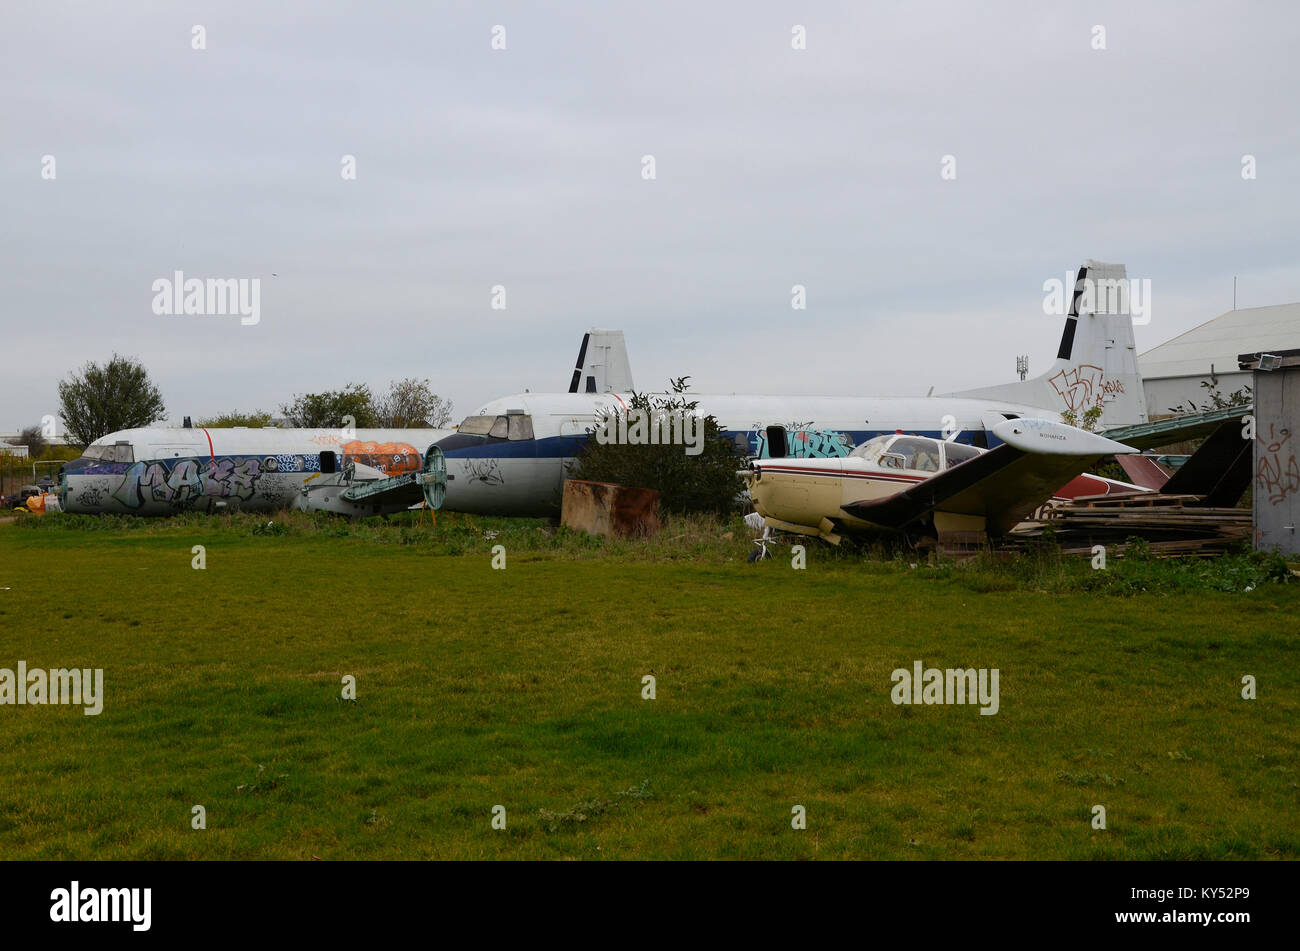 Three aircraft in the grounds of Skylark Hotel near Southend Airport initially planned to be restored for static - Stock Image